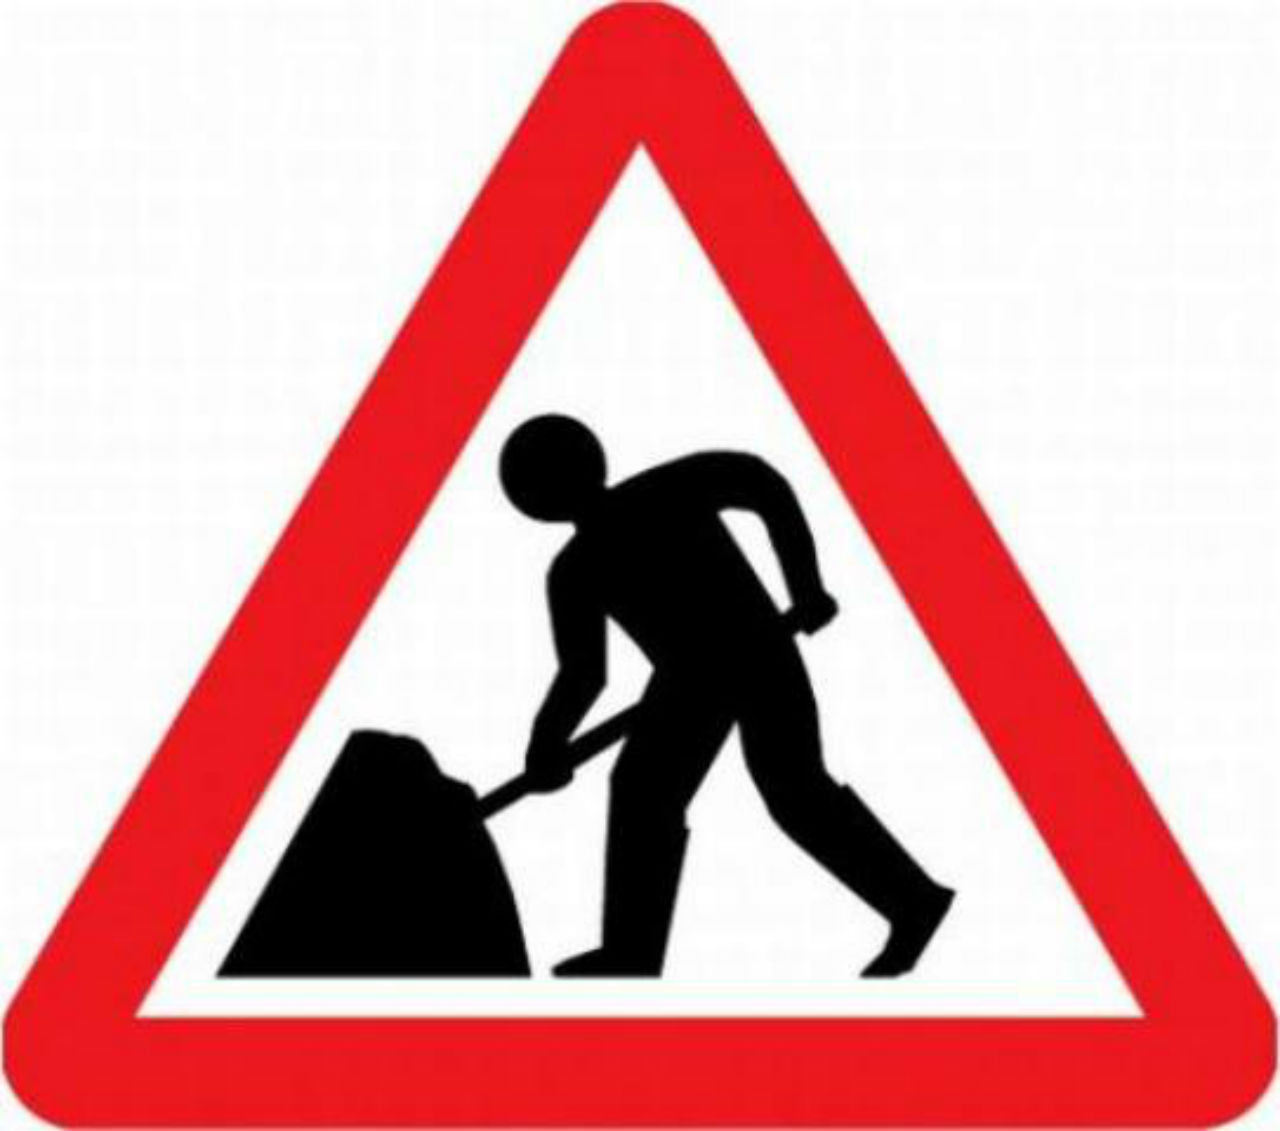 Residents should expect delays during the road works